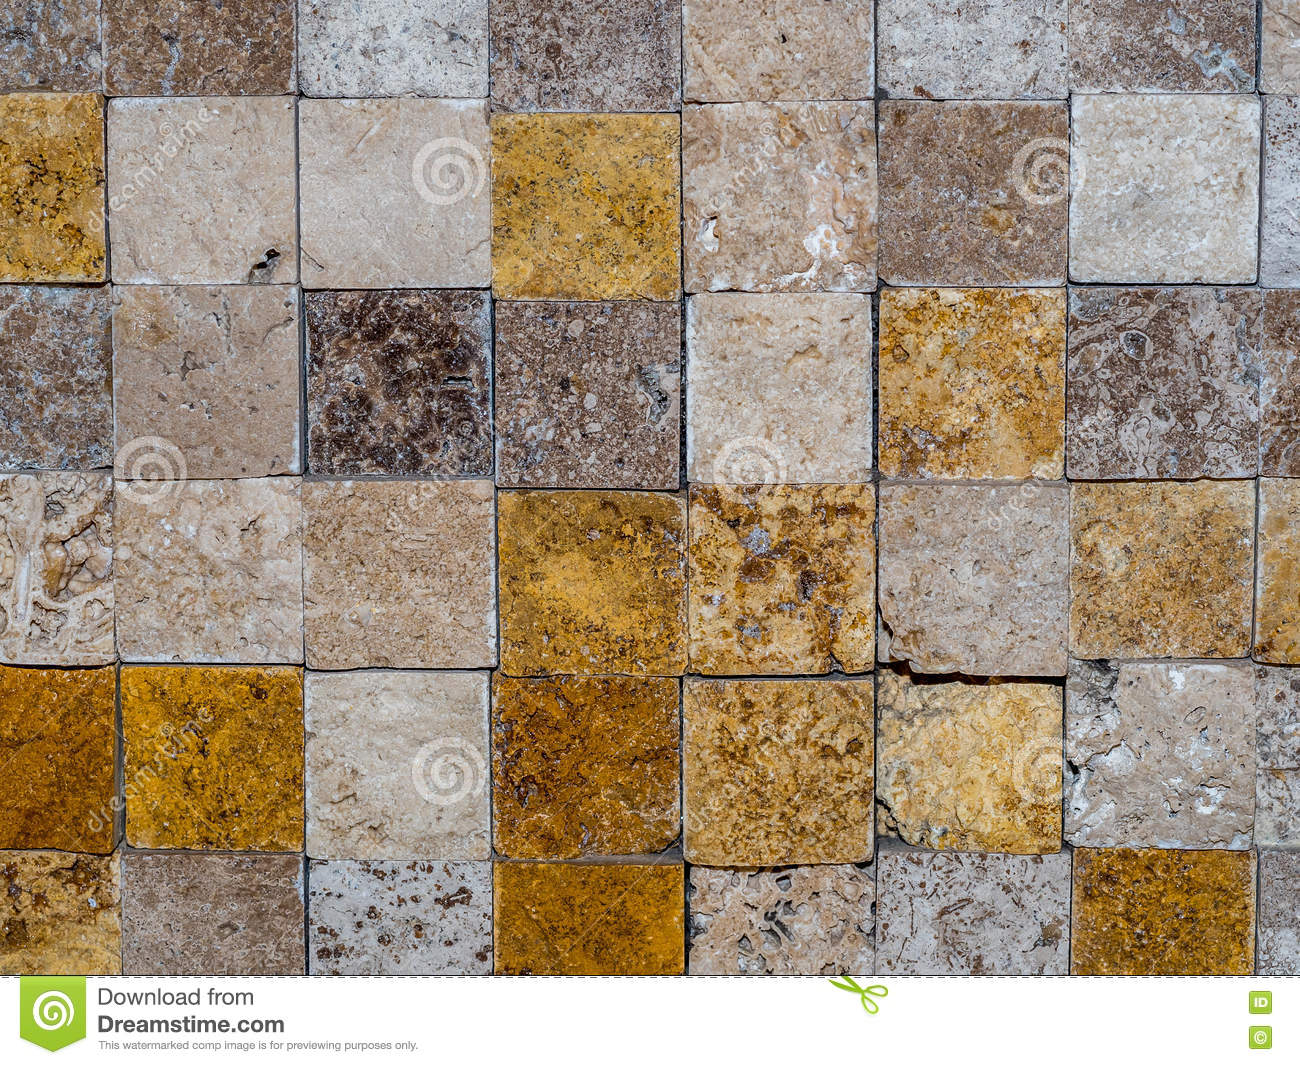 Square stone tiles on a wall